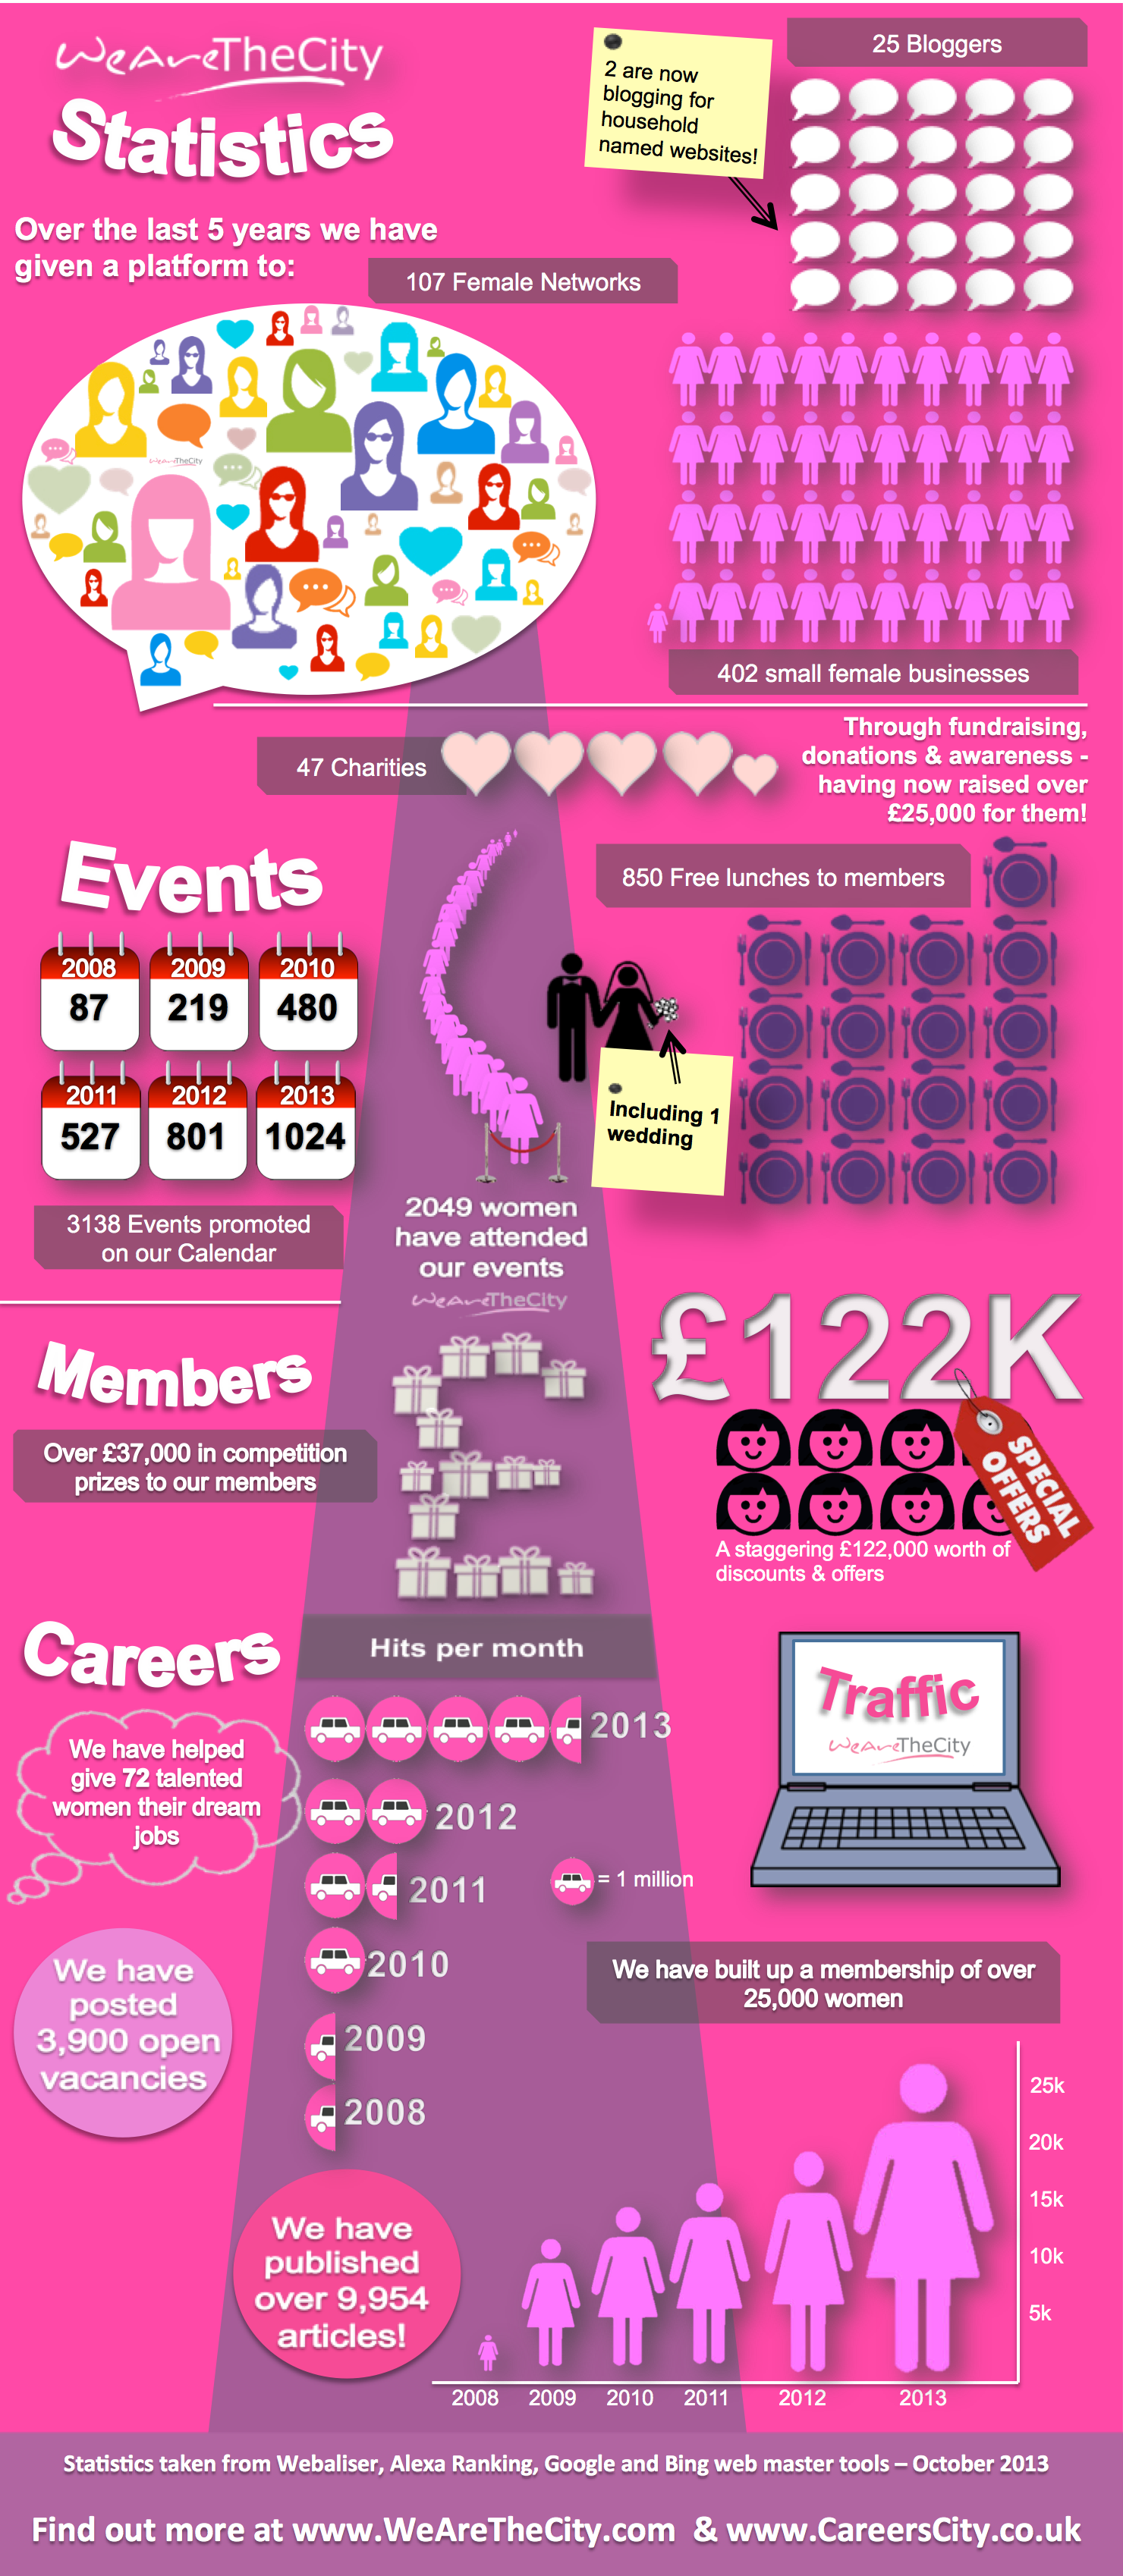 WATC-Infographic-2013 - Womens Networking, members, jobs, bloggers, London business, Site traffic, women in business, events